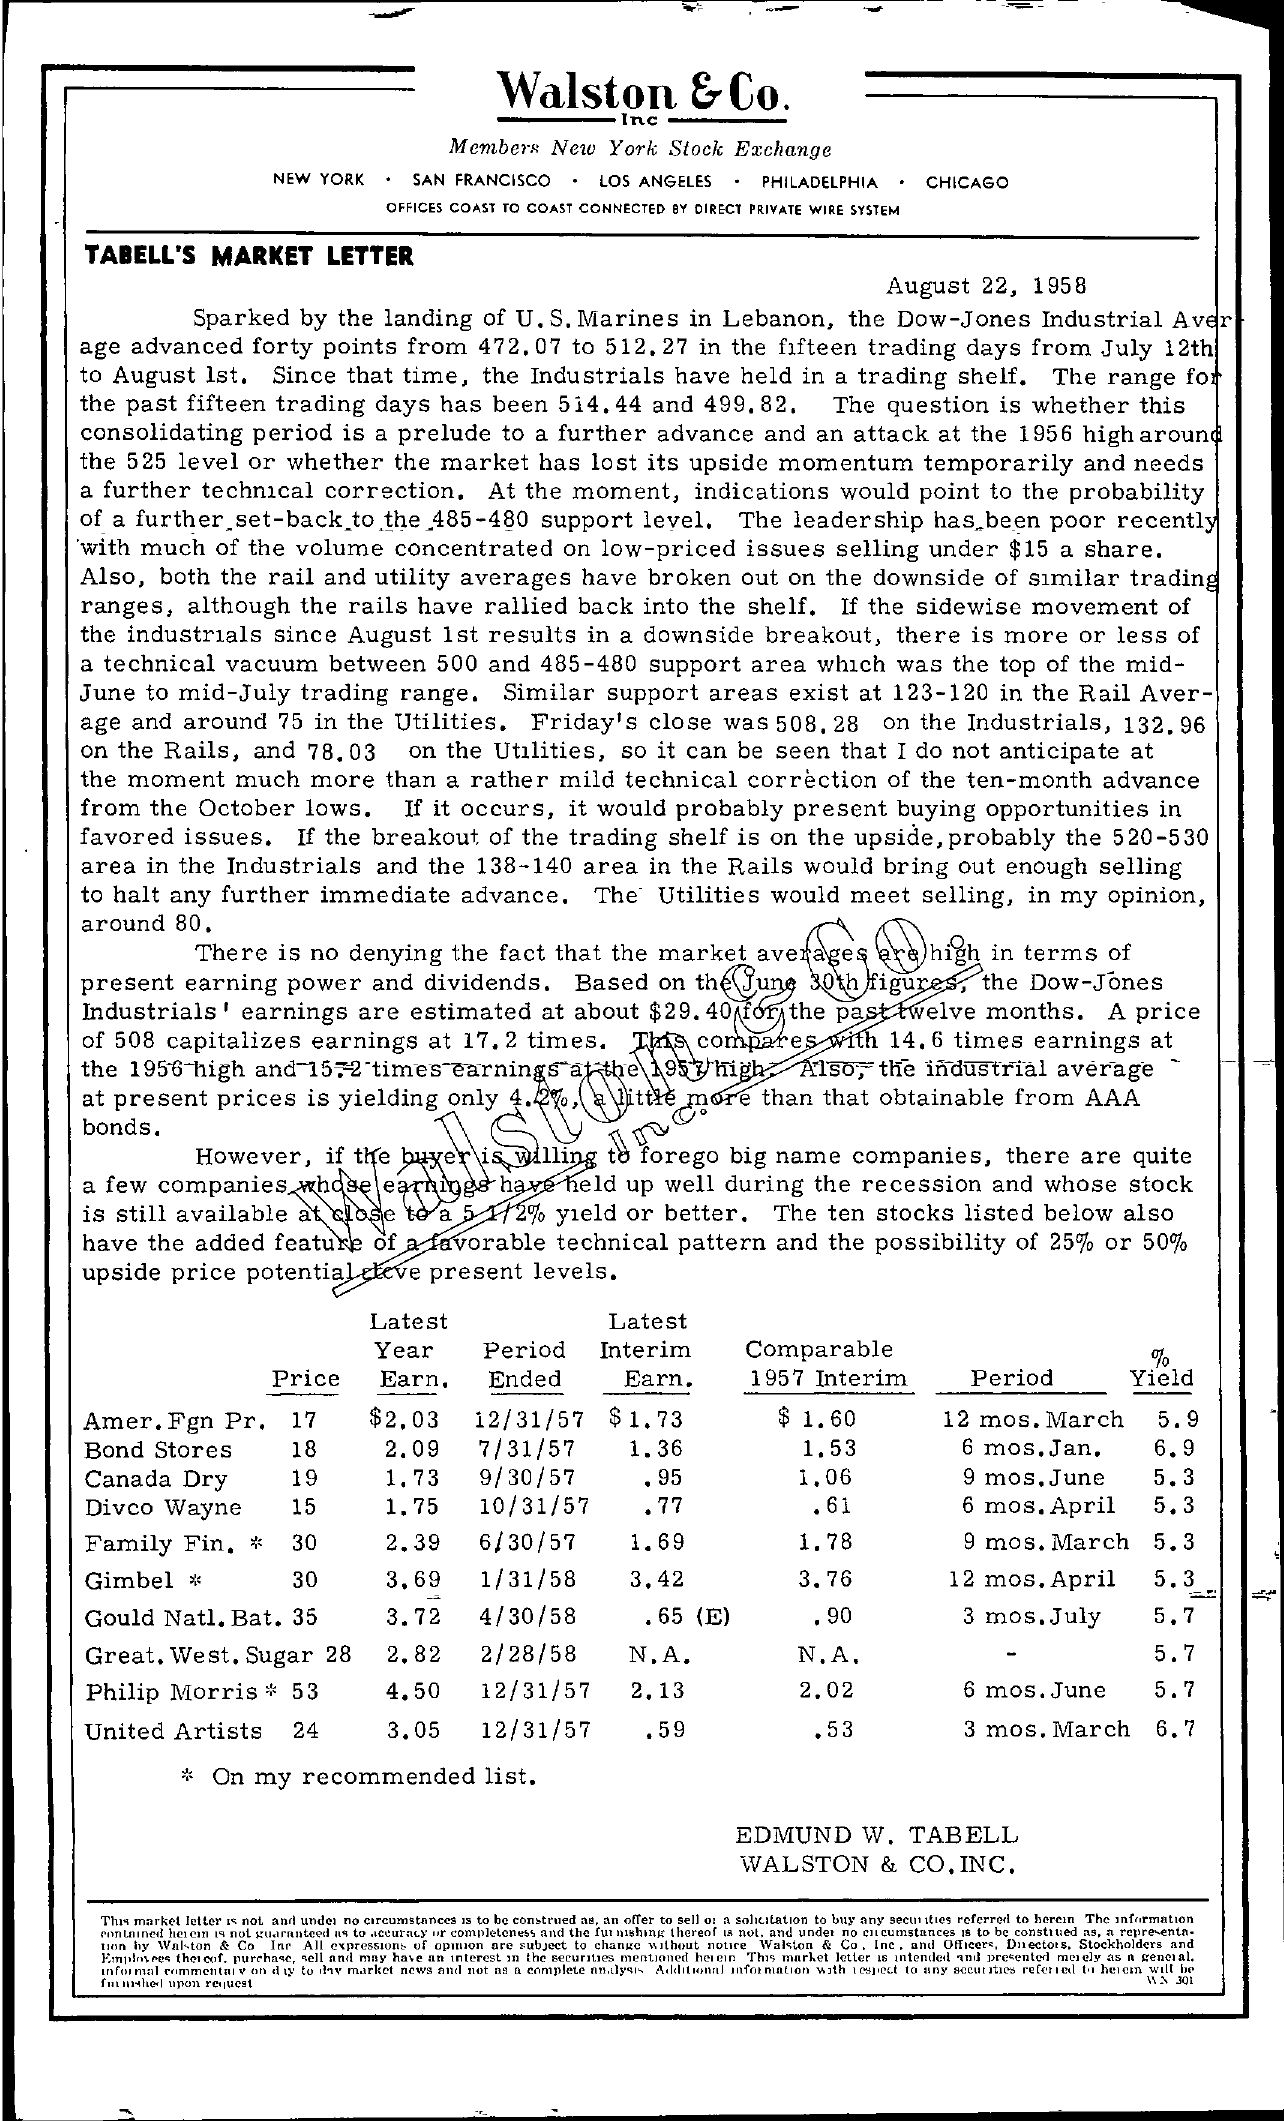 Tabell's Market Letter - August 22, 1958